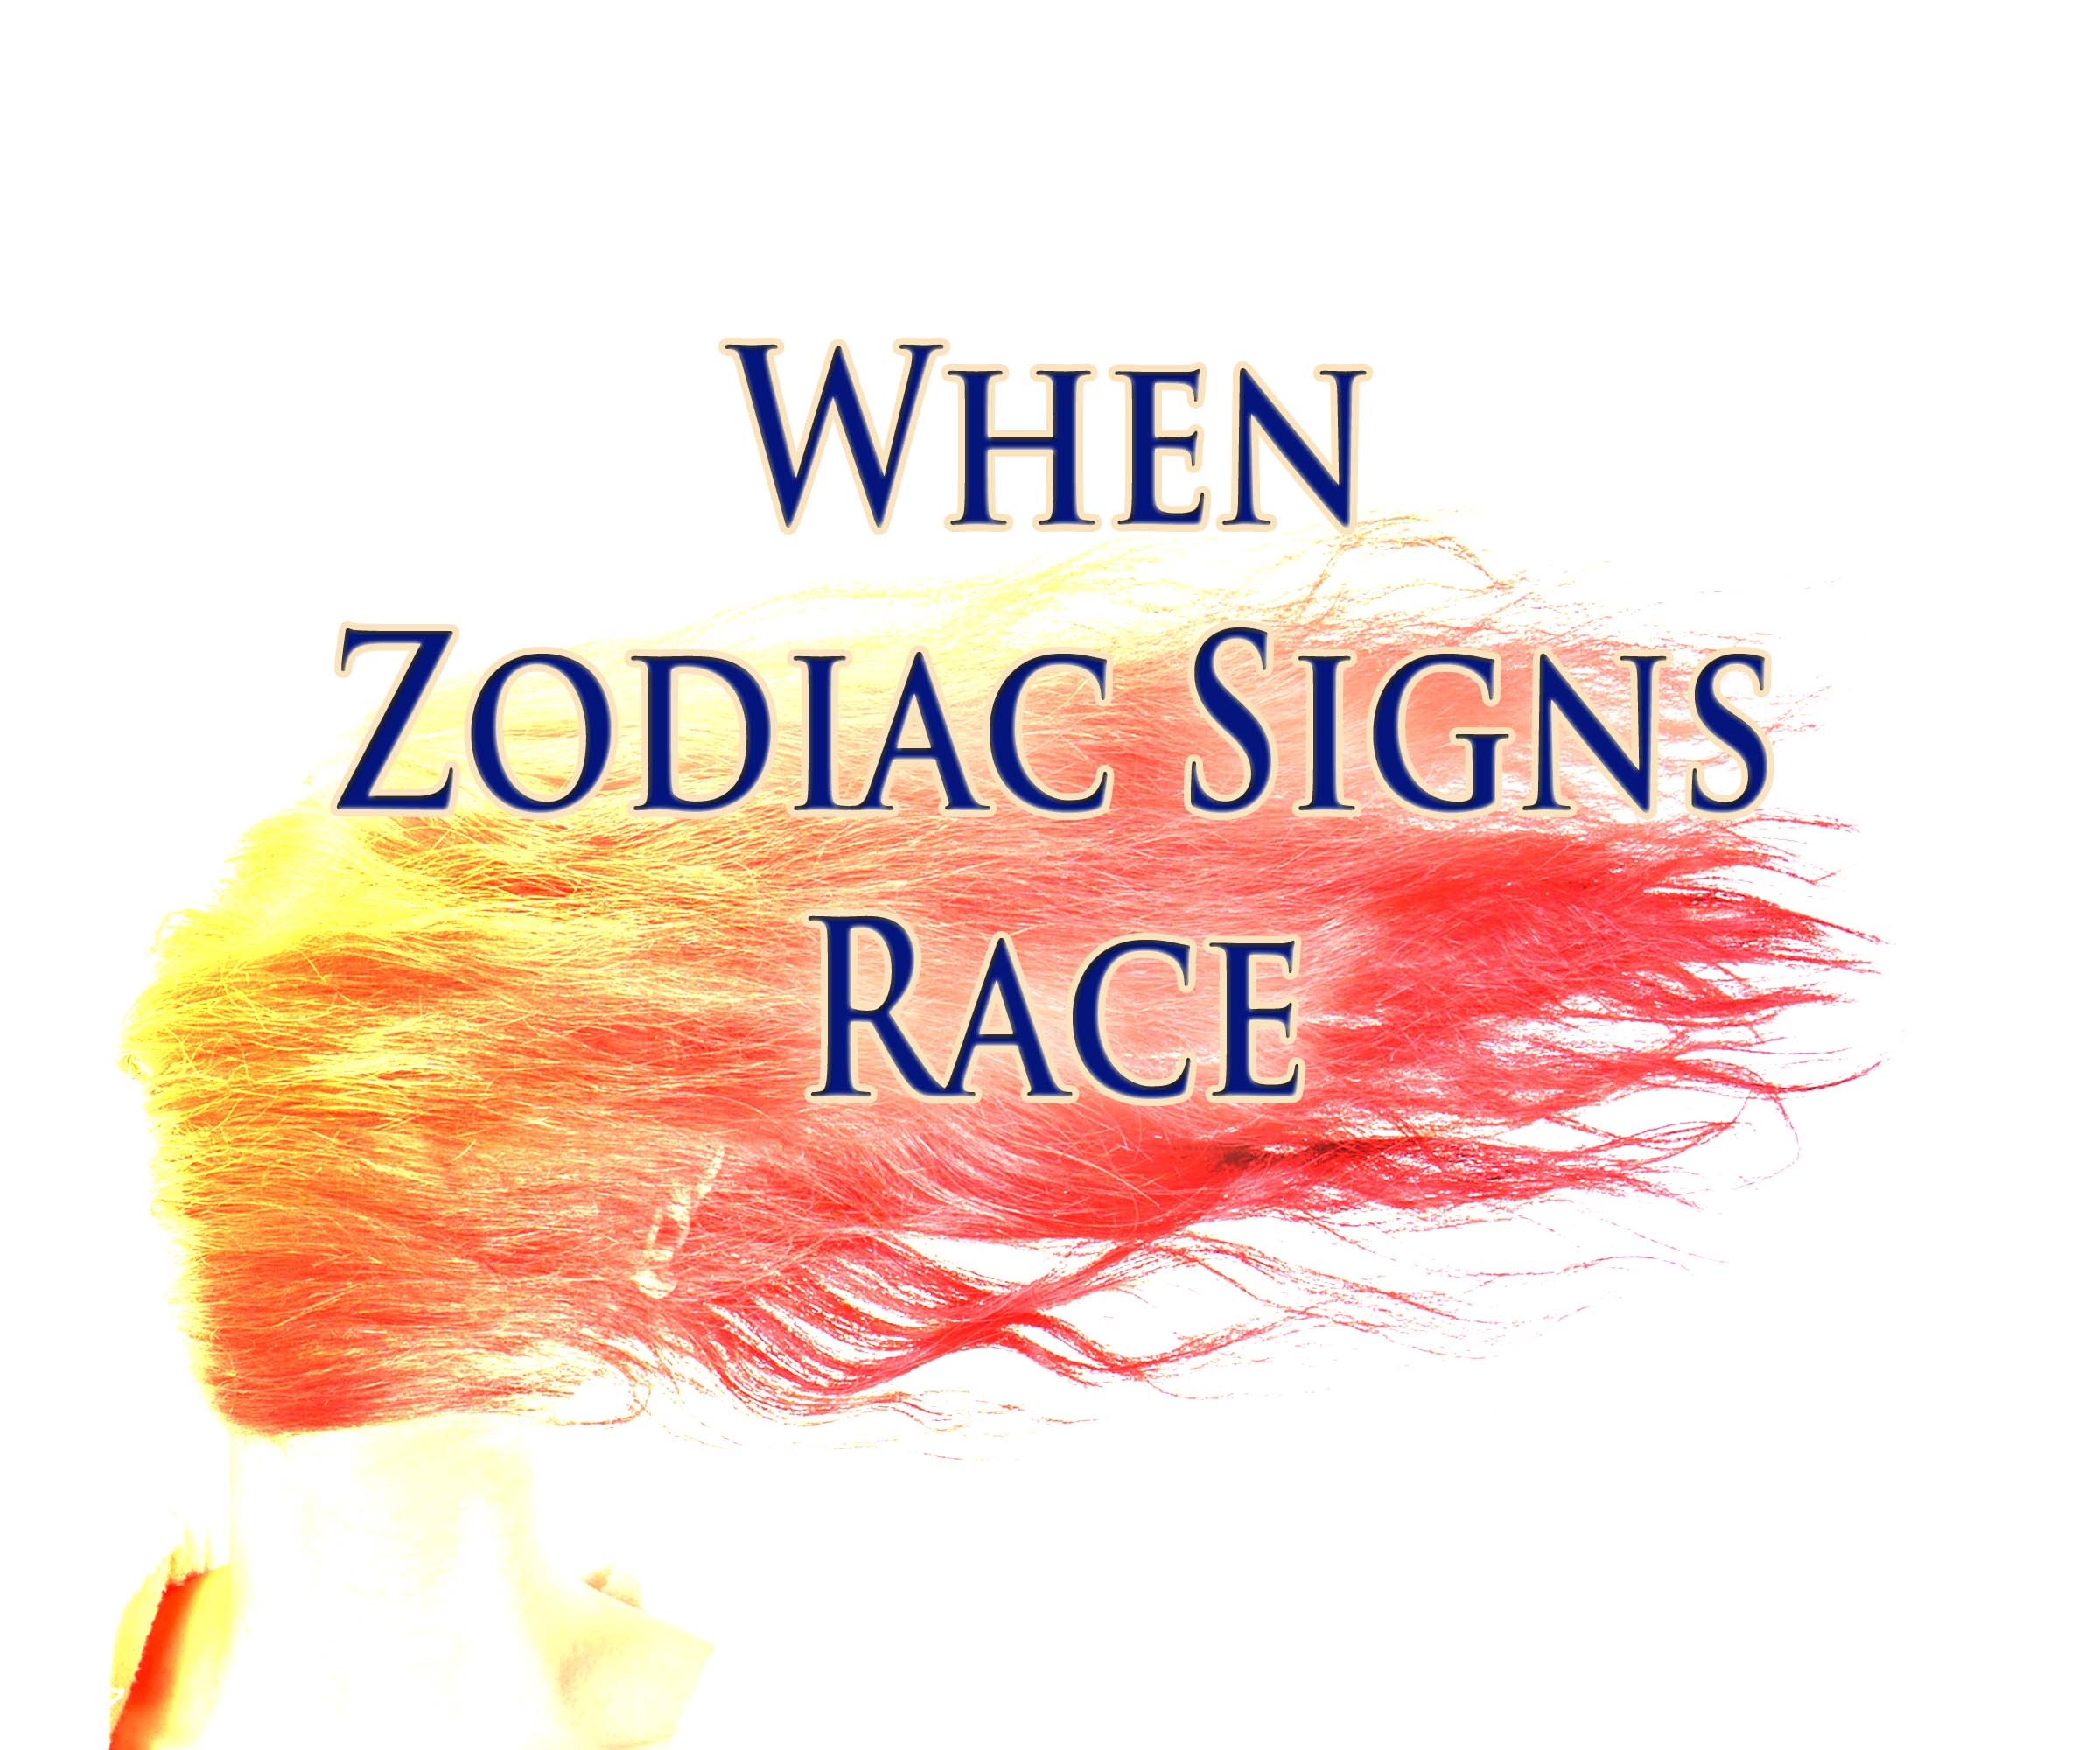 When Zodiac Signs Race